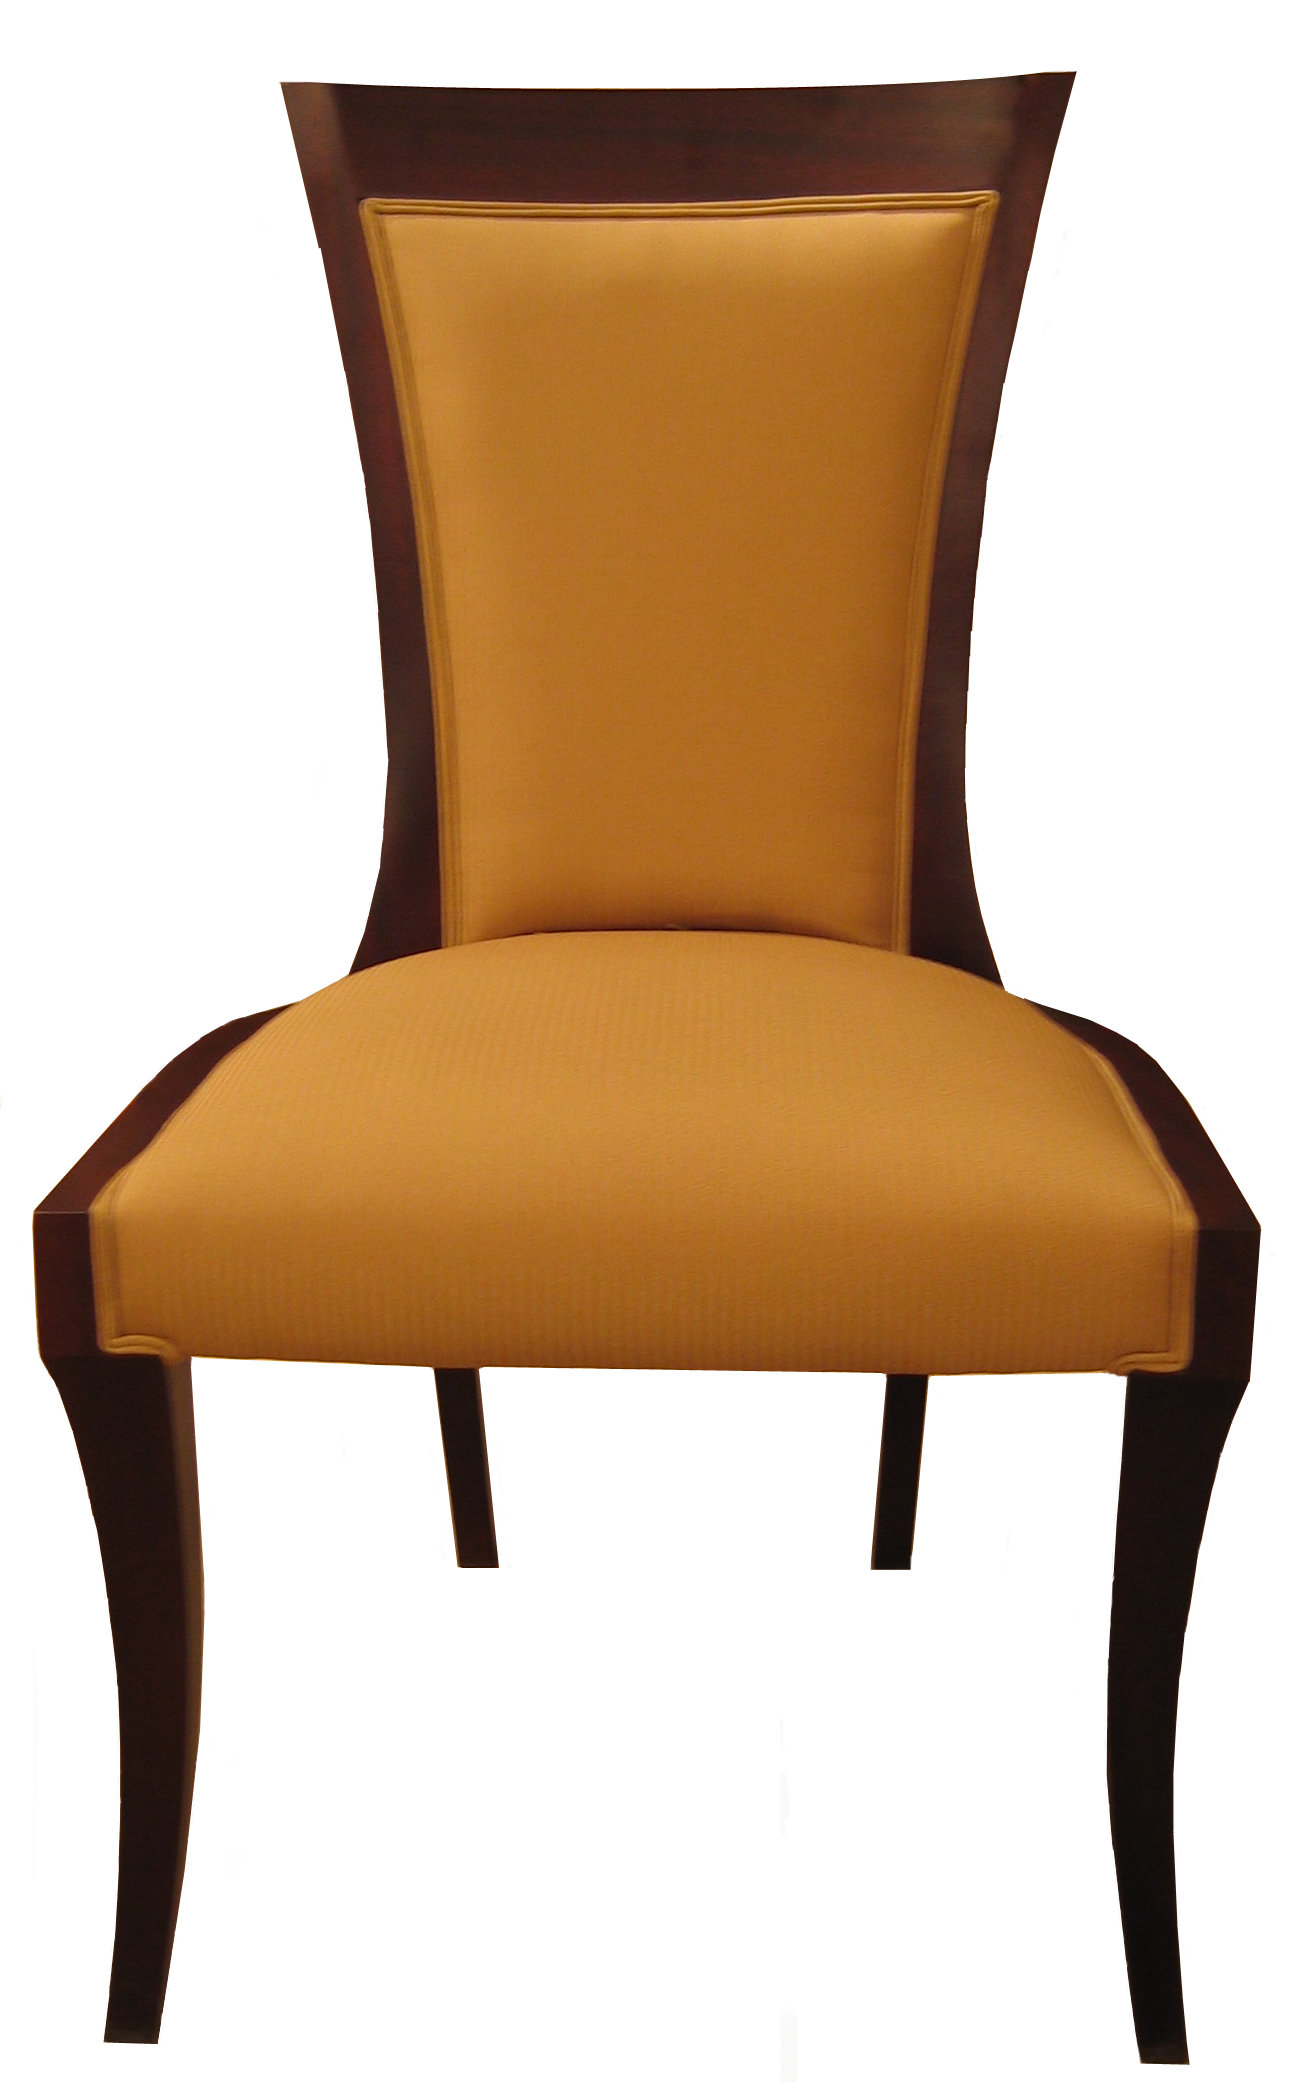 DINING CHAIRS DESIGN Chair Pads amp Cushions